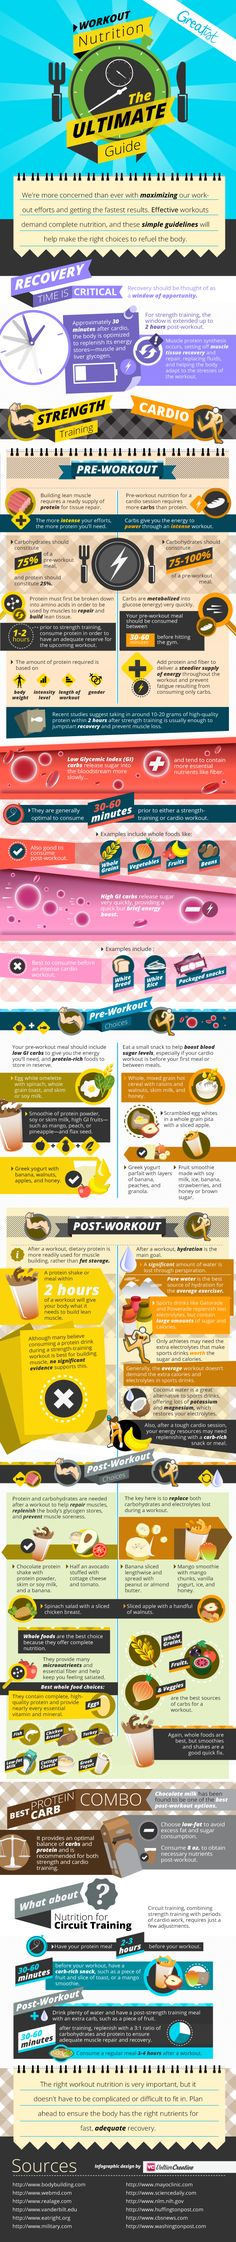 Workout NUTRITION!!! http://live-2-be-healthy.tumblr.com/post/9272631949/the-complete-guide-to-workout-nutrition